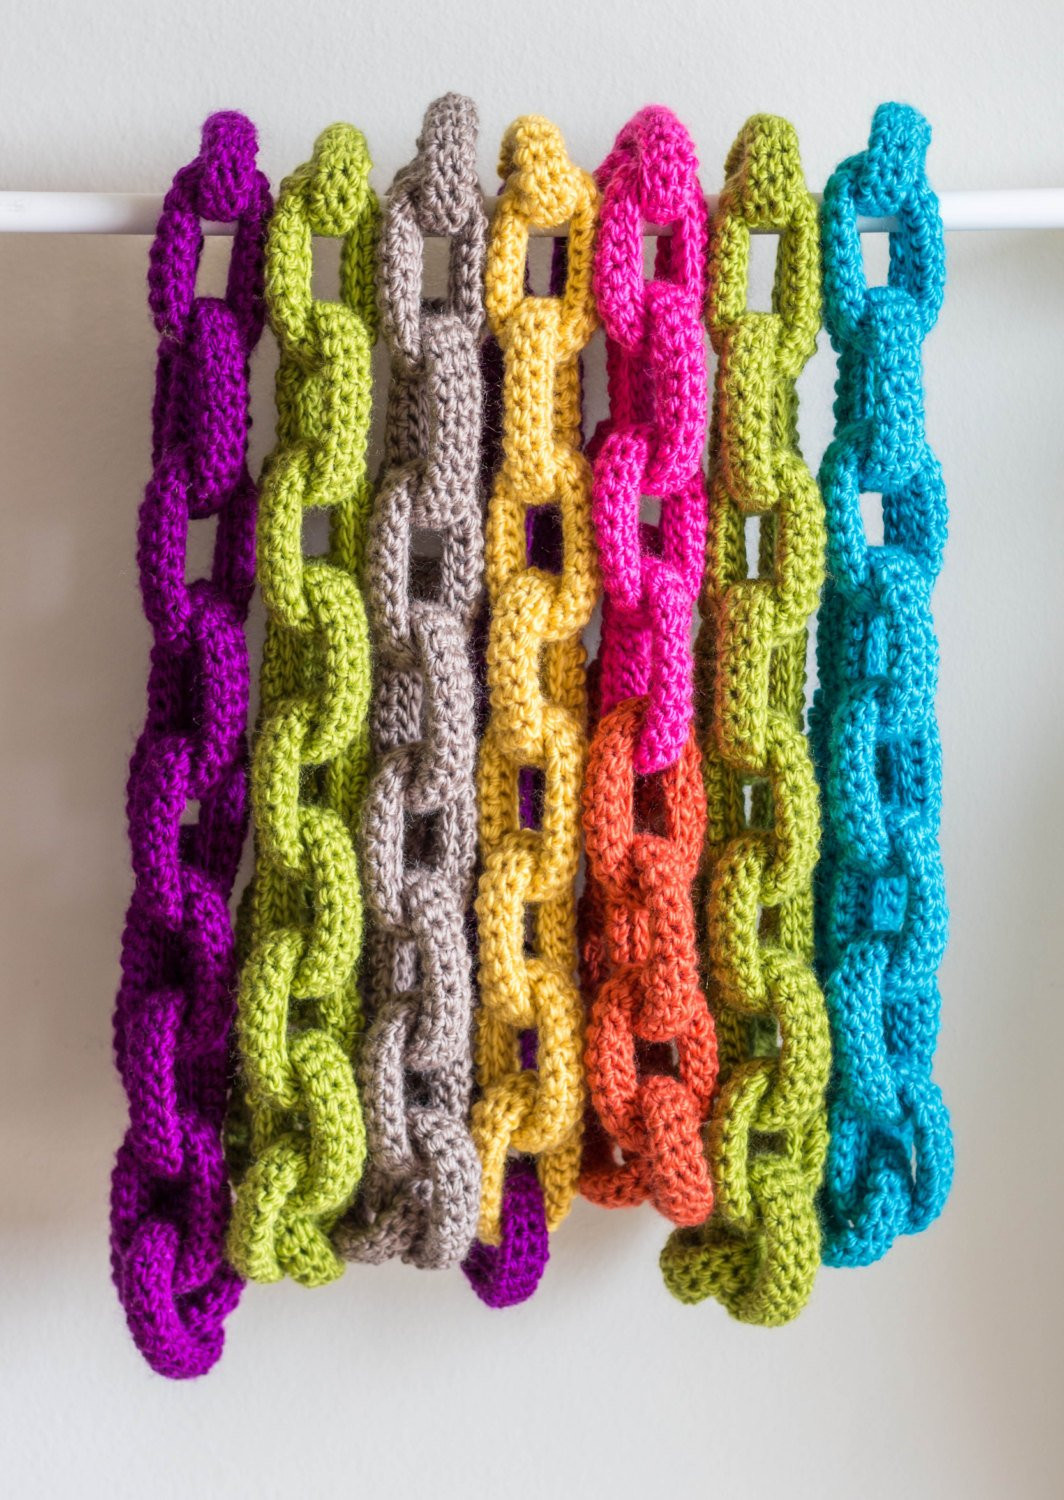 Scarf Crochet Unique Chain Link Scarf Crochet Pattern Crochet Scarf Pattern Of Innovative 47 Pictures Scarf Crochet